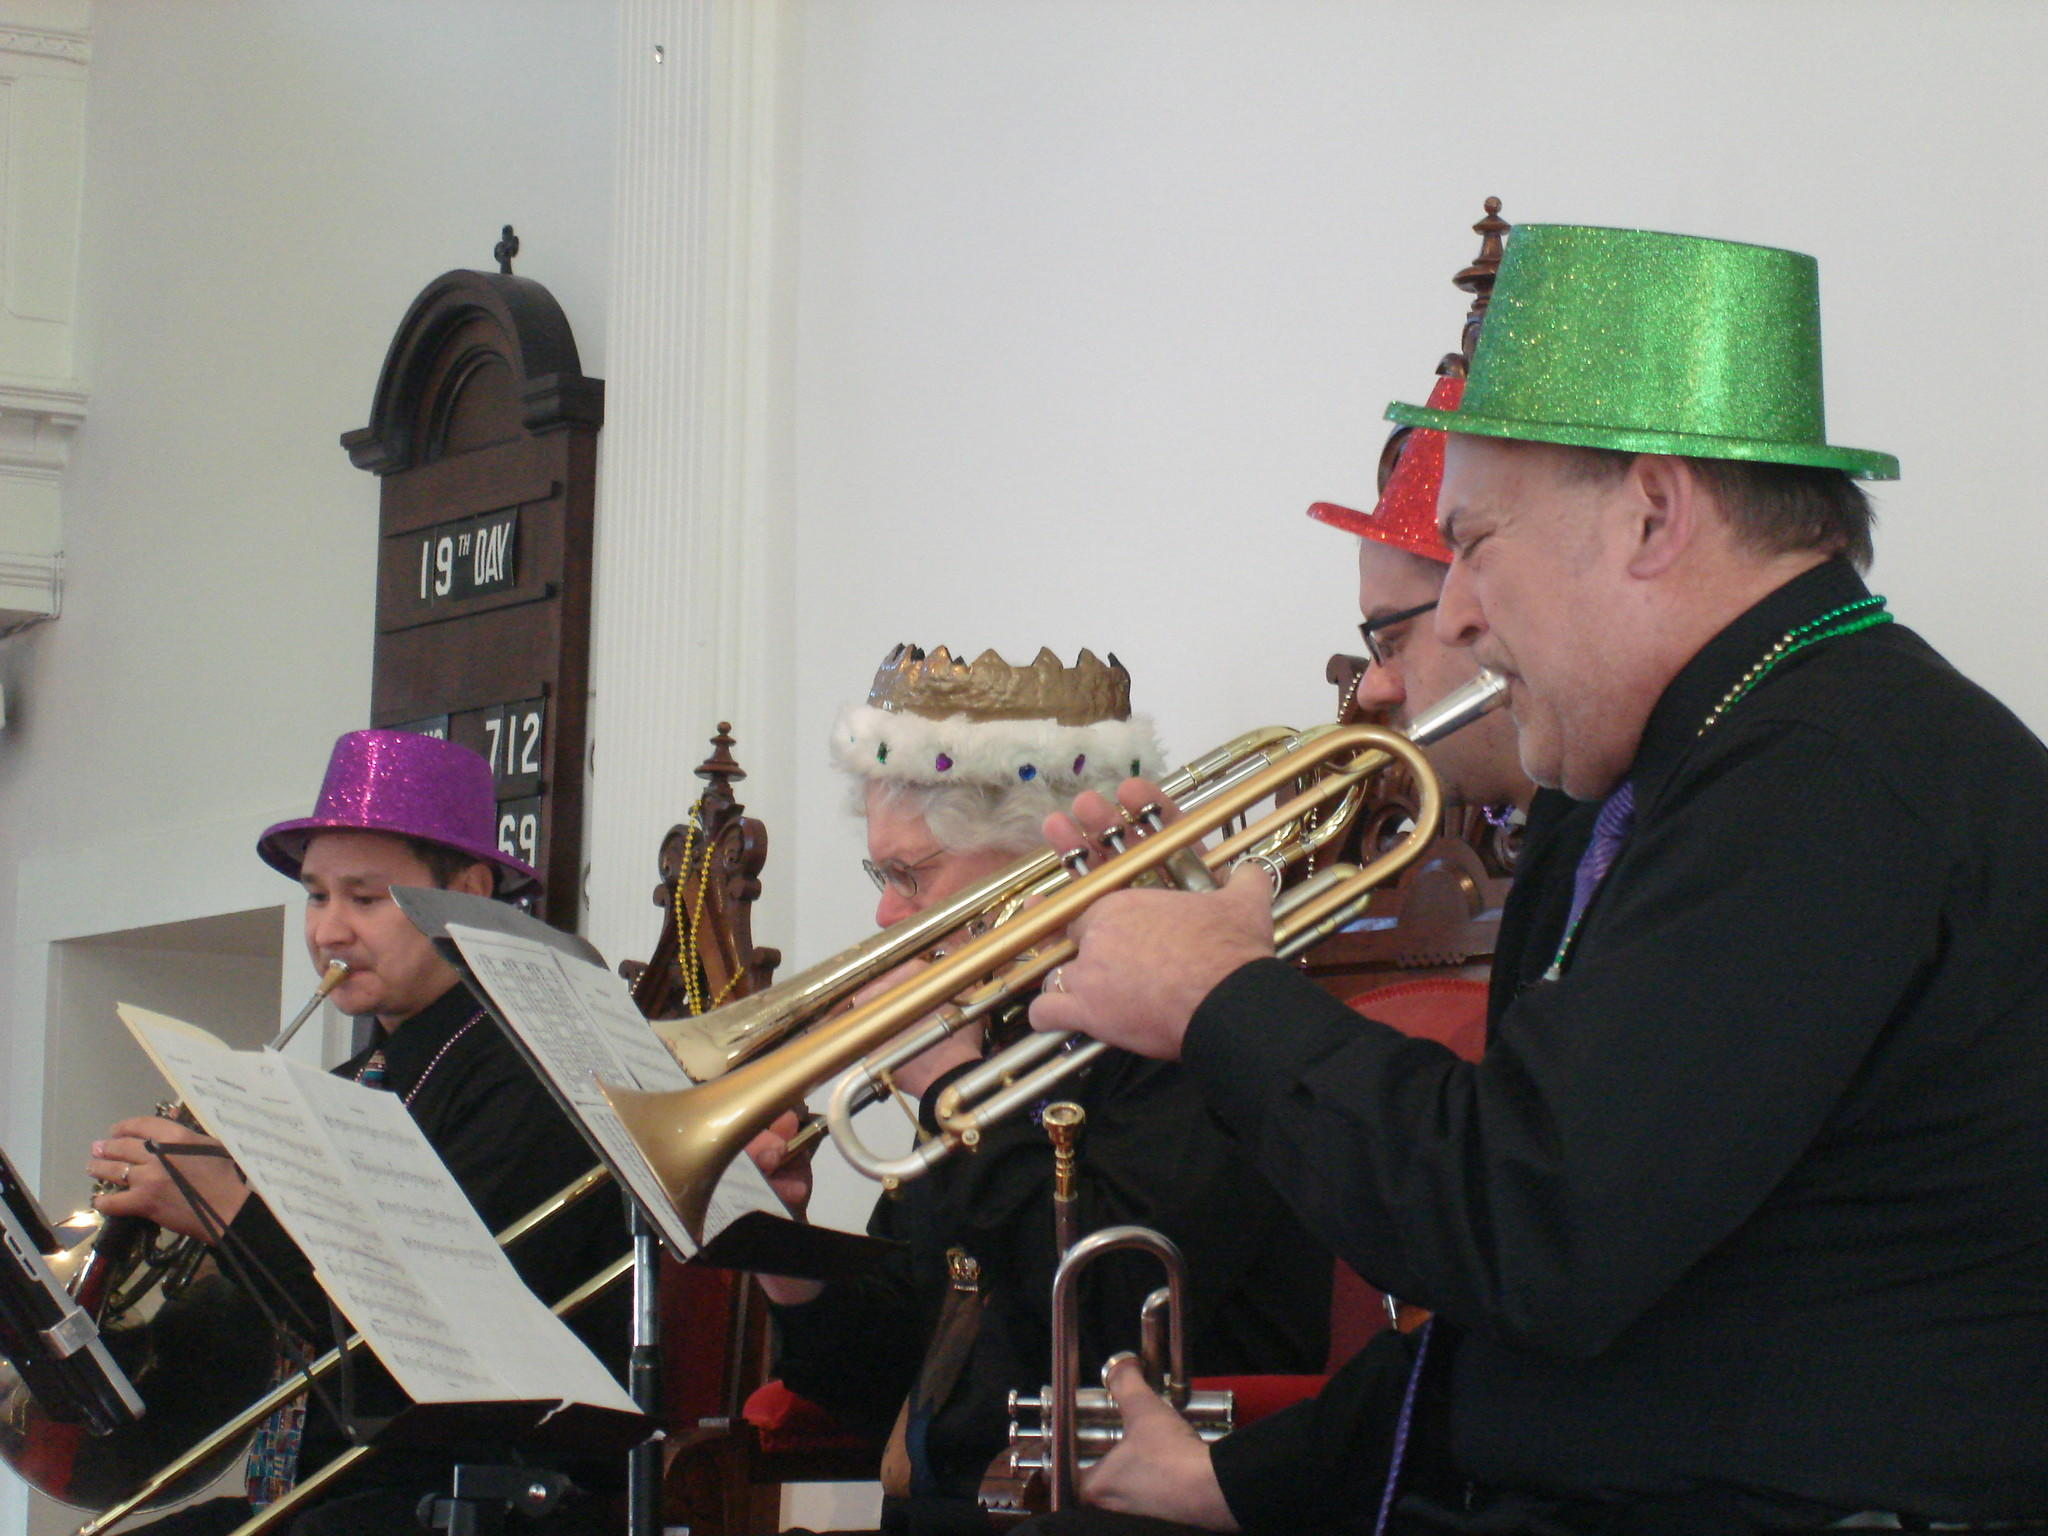 Members of the Brass City Quintet perform at the Avon Congregational Church. They will return to the church on March 2 for its annual Mardi Gras service.